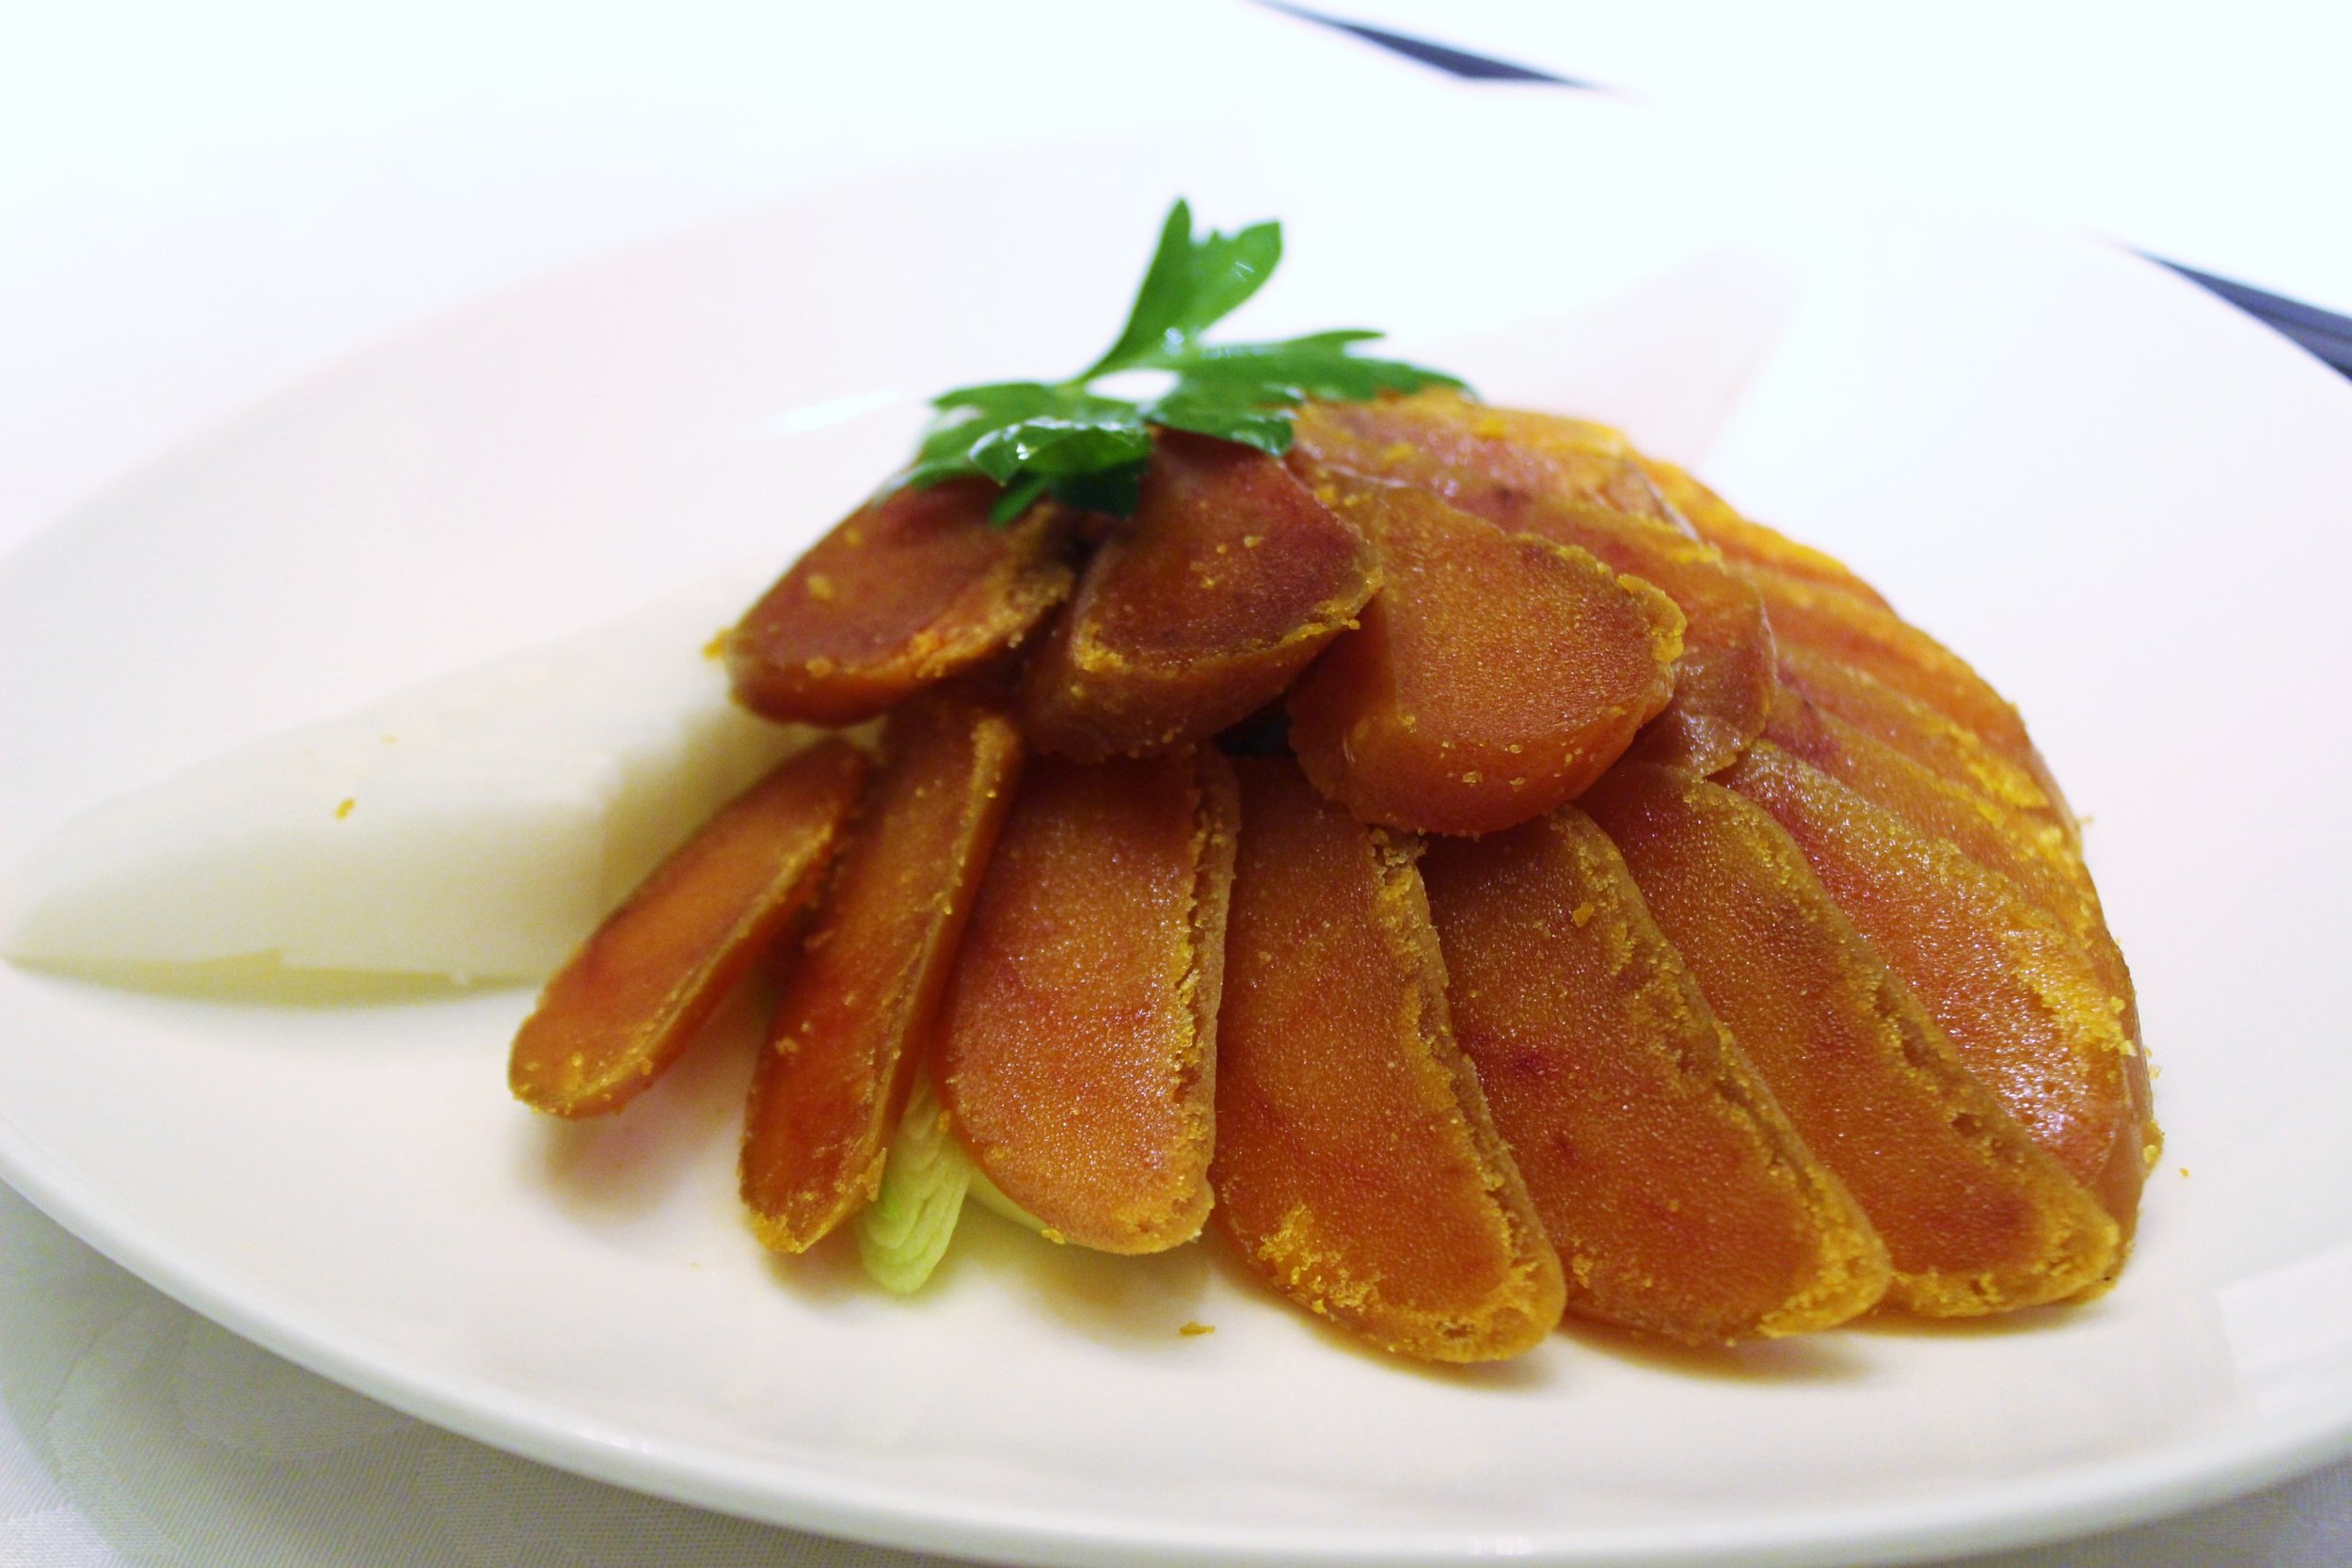 Roasted Mullet Roe with Turnip & Leek 香烤烏魚子 at 欣葉 in Taiwan